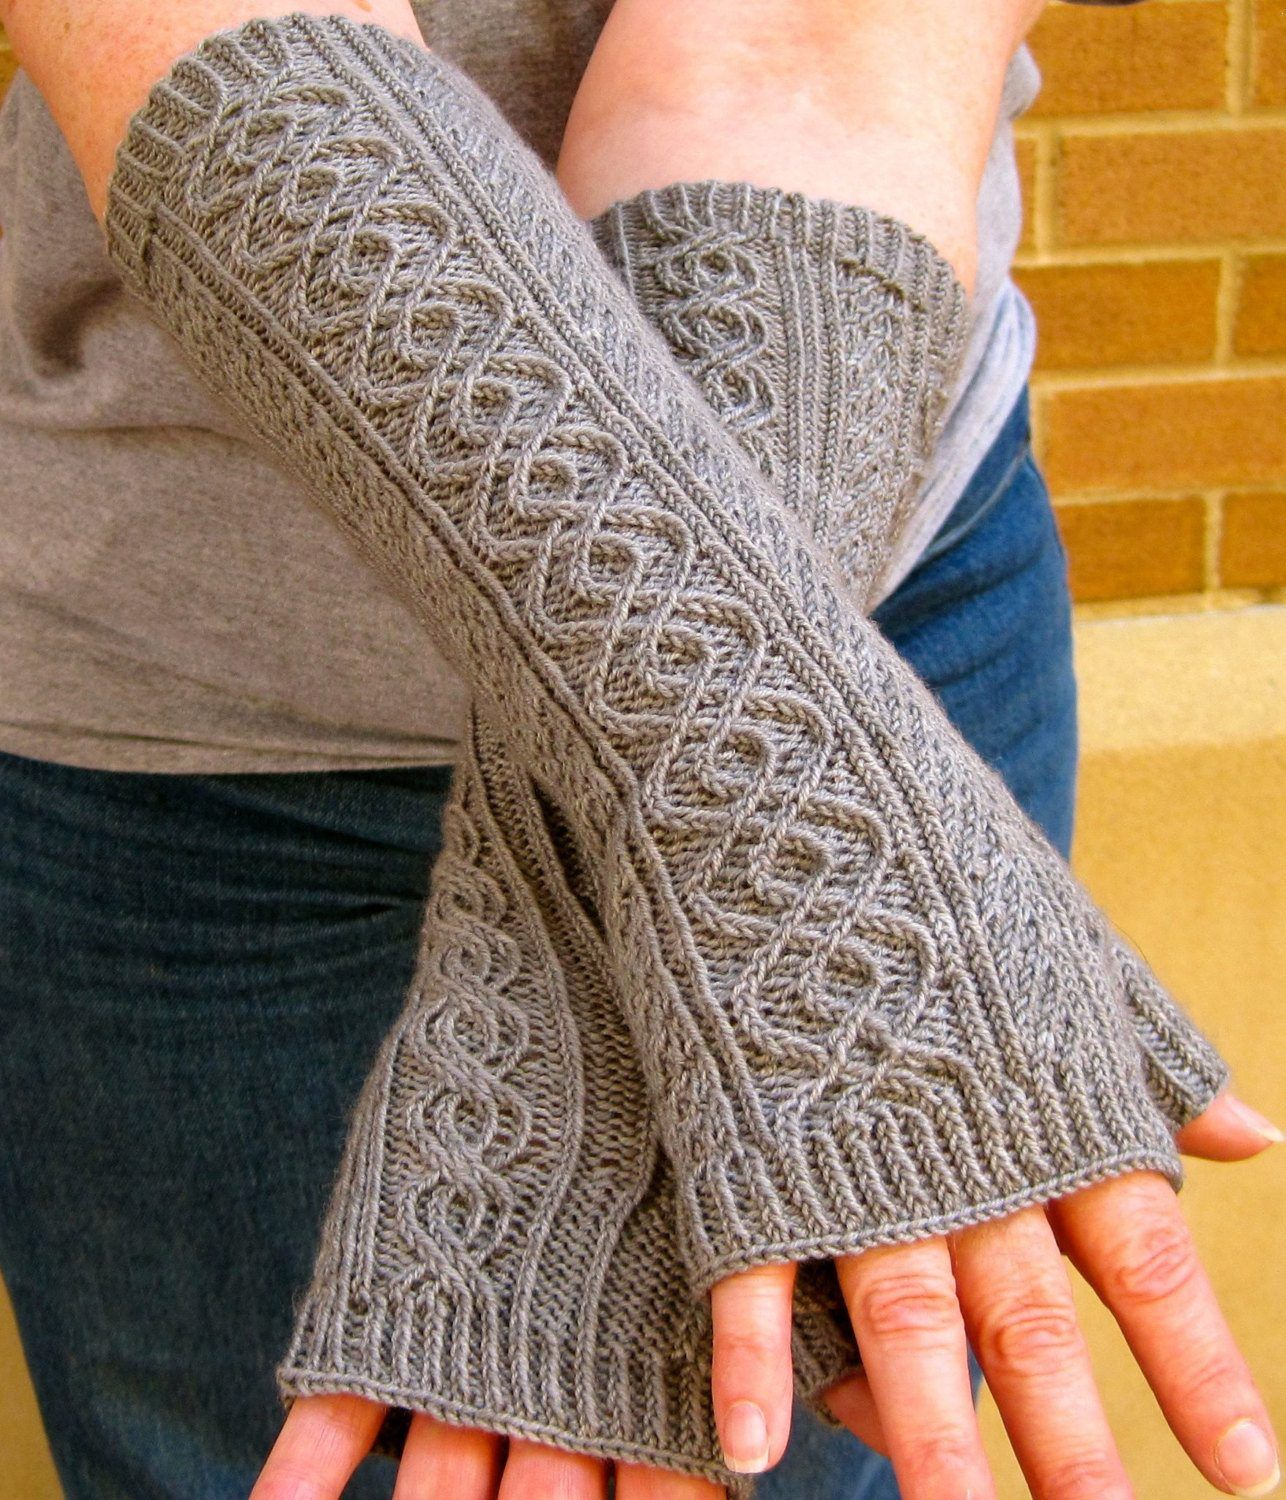 Twisty Mitts Knitting Patterns | Fingerless gloves, Knitting ...